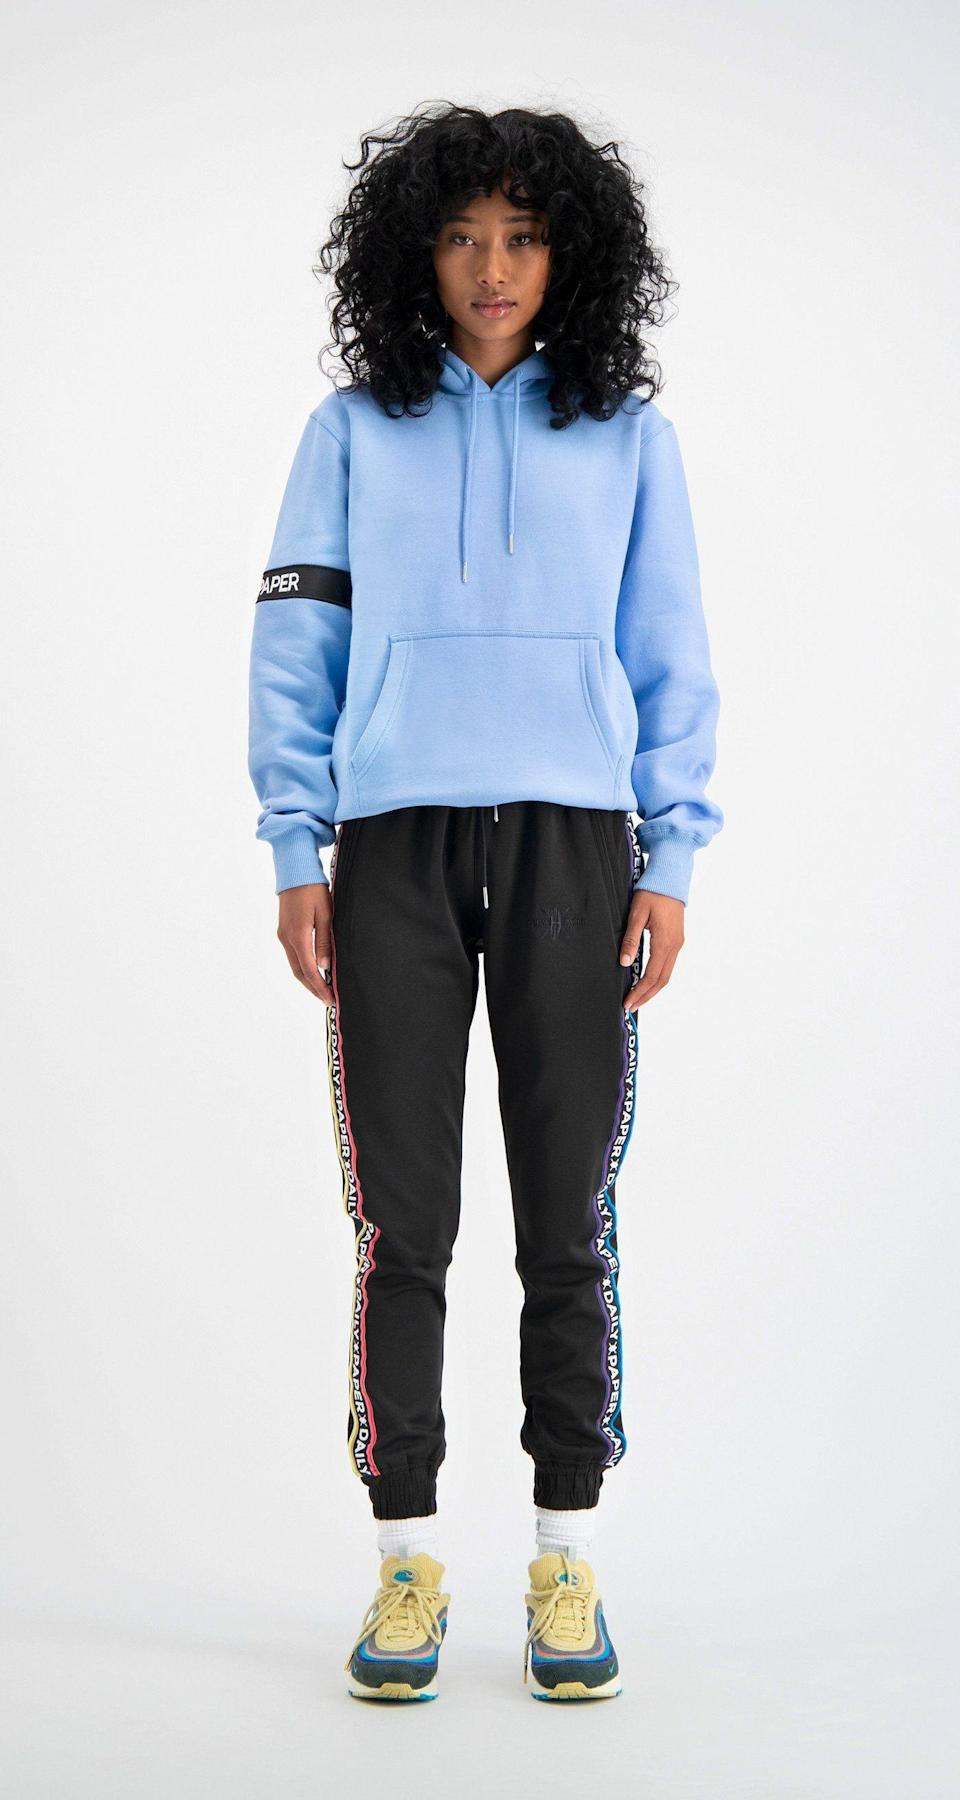 "<p><strong>Daily Paper</strong></p><p>dailypaperclothing.com</p><p><strong>$108.00</strong></p><p><a href=""https://www.dailypaperclothing.com/collections/women-all/products/light-blue-captain-hoody?variant=560213852181"" rel=""nofollow noopener"" target=""_blank"" data-ylk=""slk:Shop Now"" class=""link rapid-noclick-resp"">Shop Now</a></p><p>This classic style hoodie comes in soooo many colors, but the dreamy blue one is *chef's kiss.* </p>"